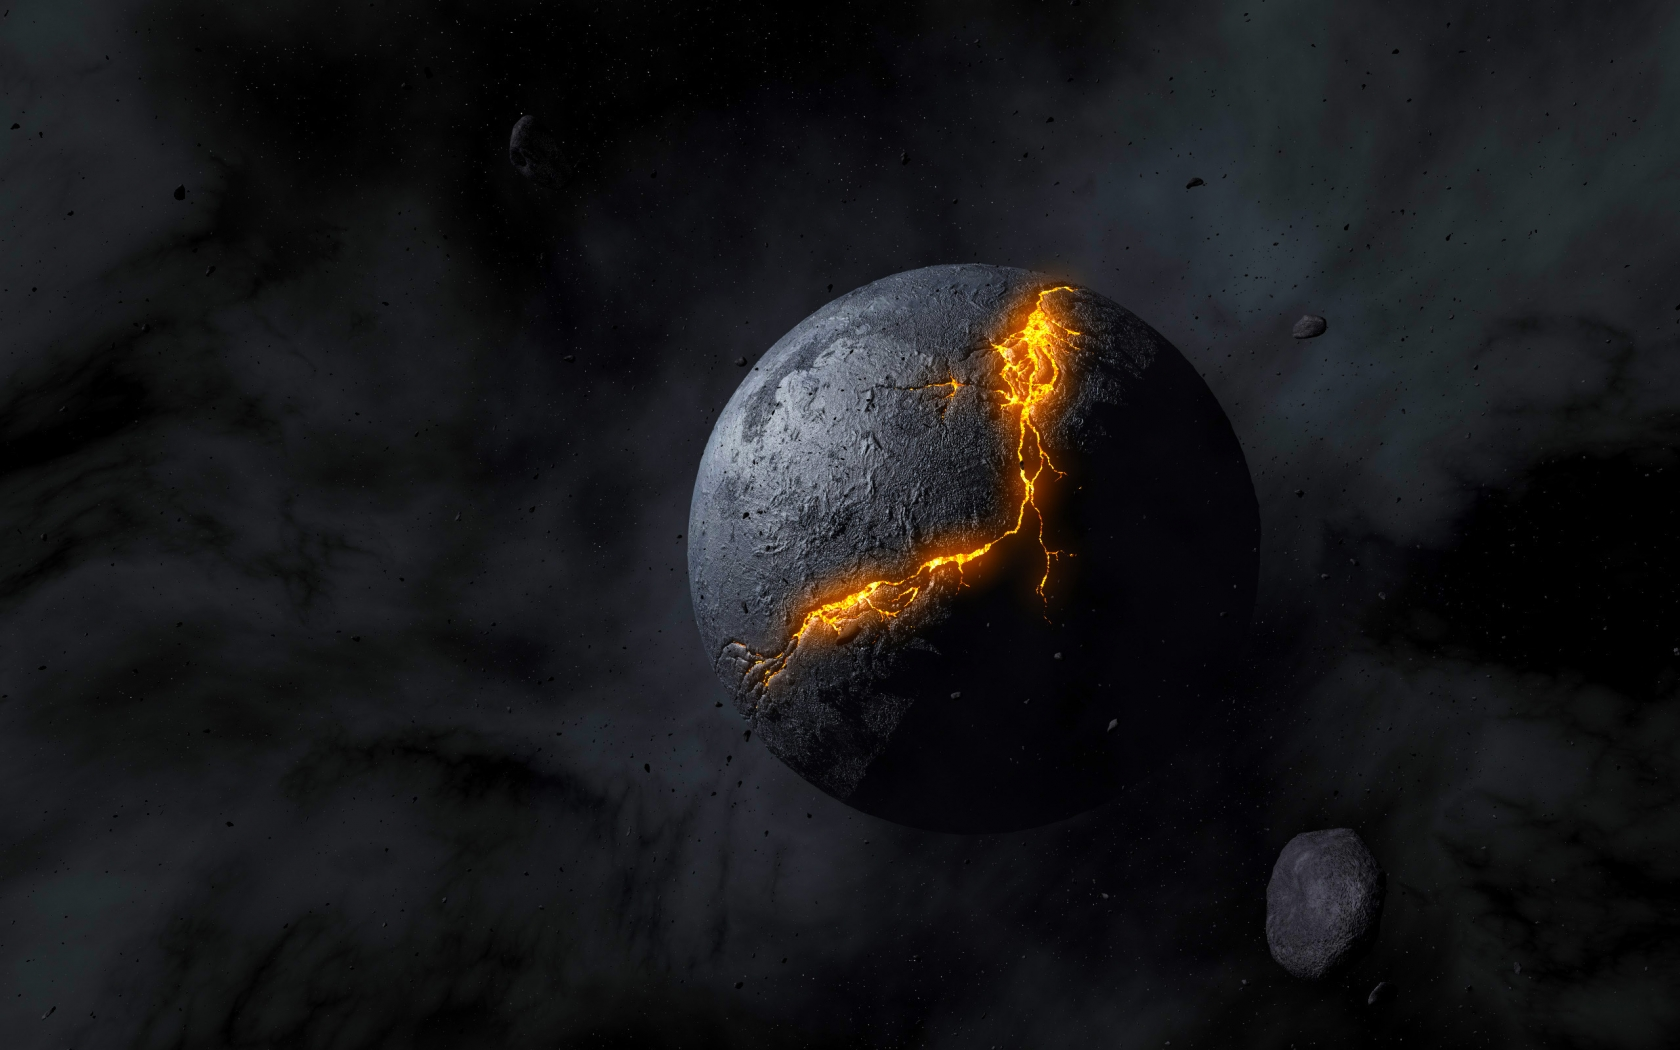 space-disaster-1680x1050-wallpaper-4625